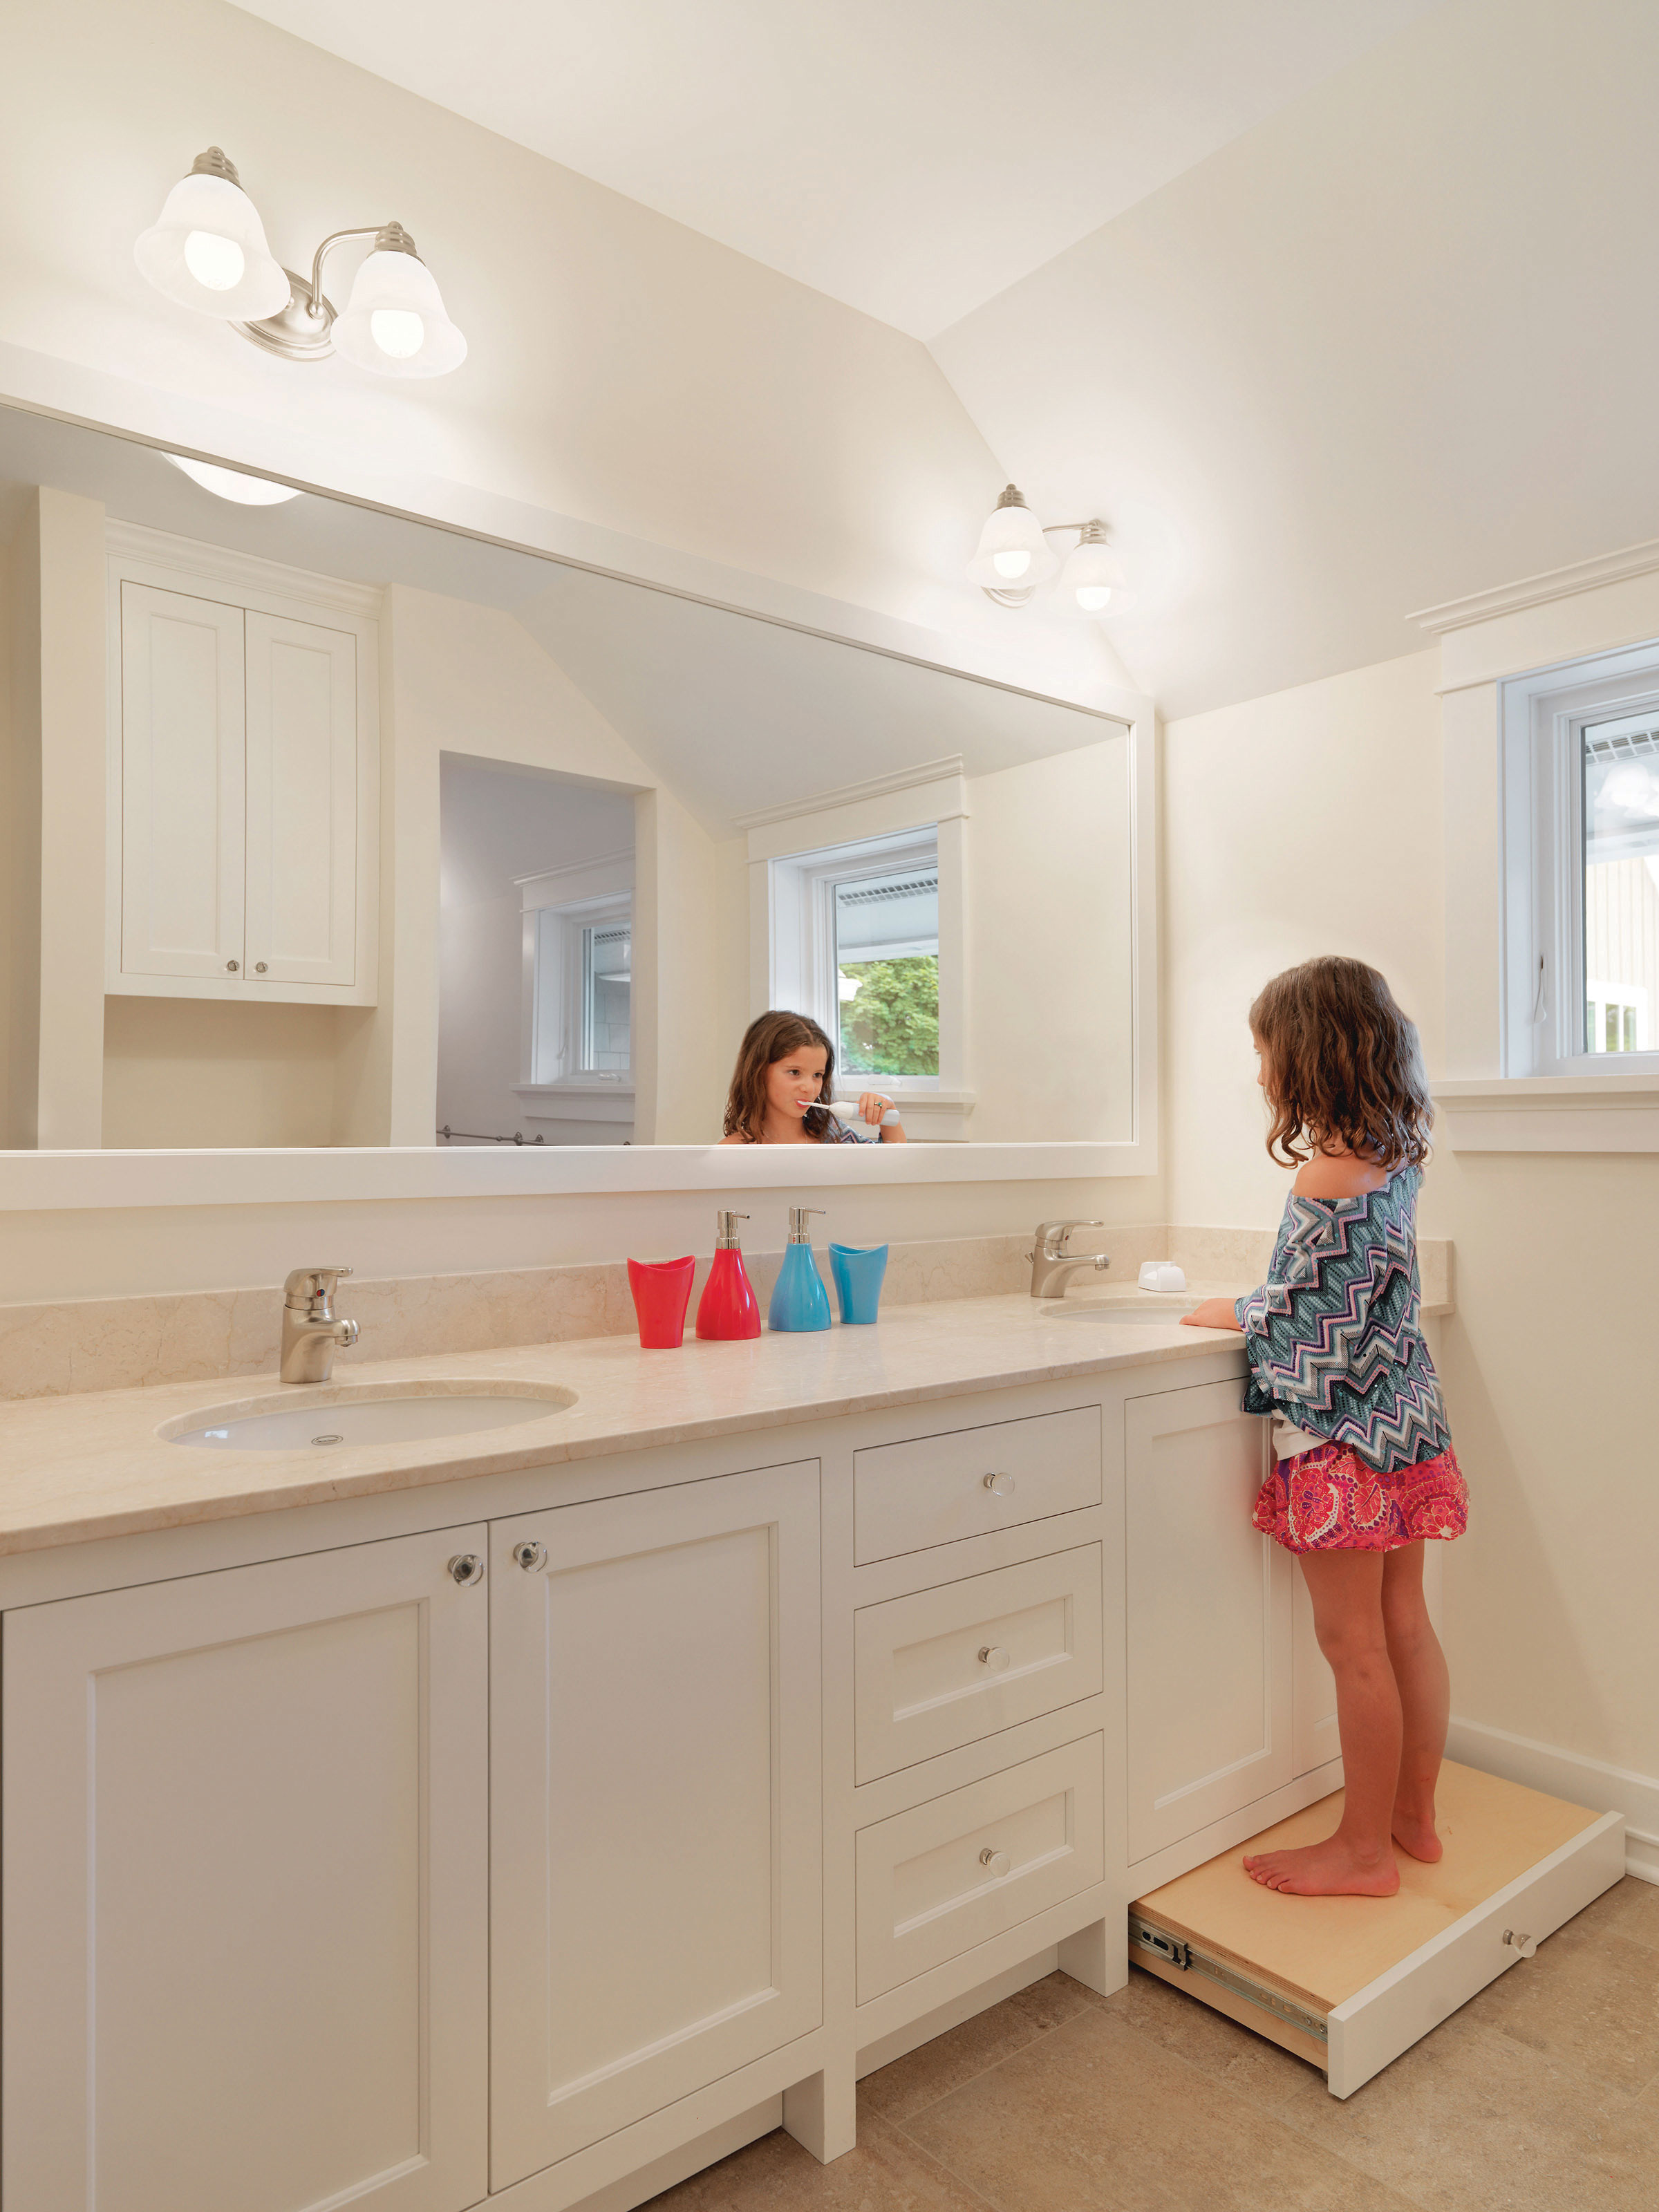 Clever Toe Kick Gives Kids A Boost For Brushing Teeth Simpson Cabinetry